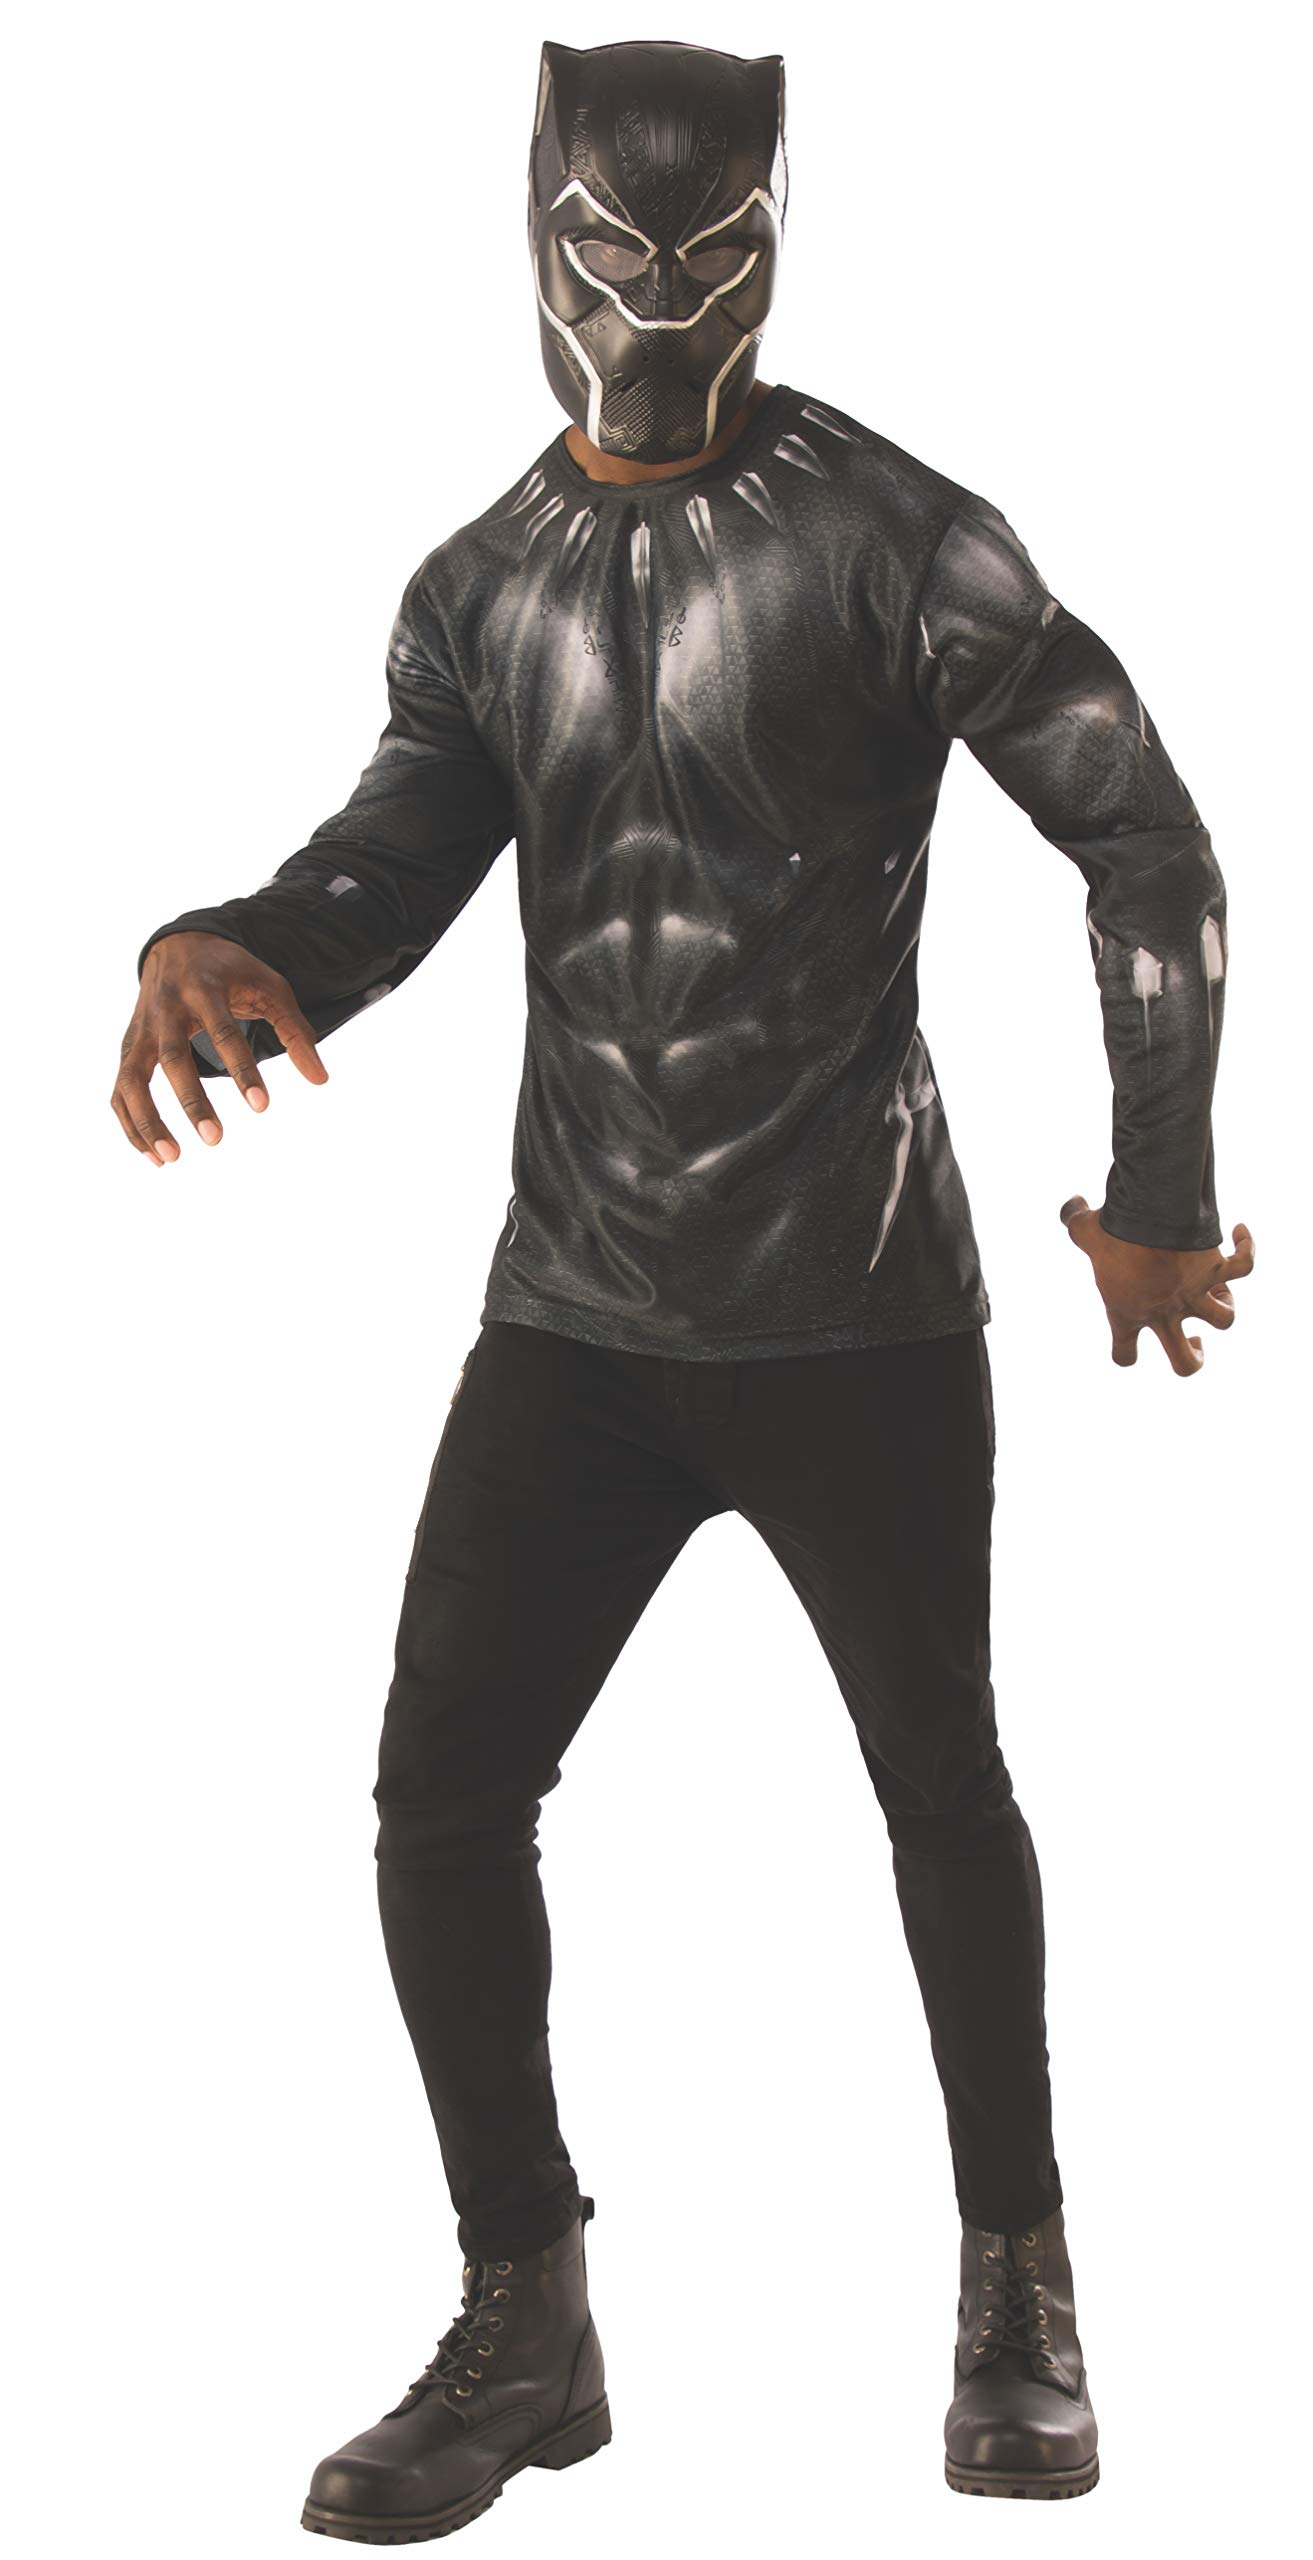 Rubie's Men's Marvel: Avengers 4 Men's Black Panther Costume Top and Mask Adult Costume